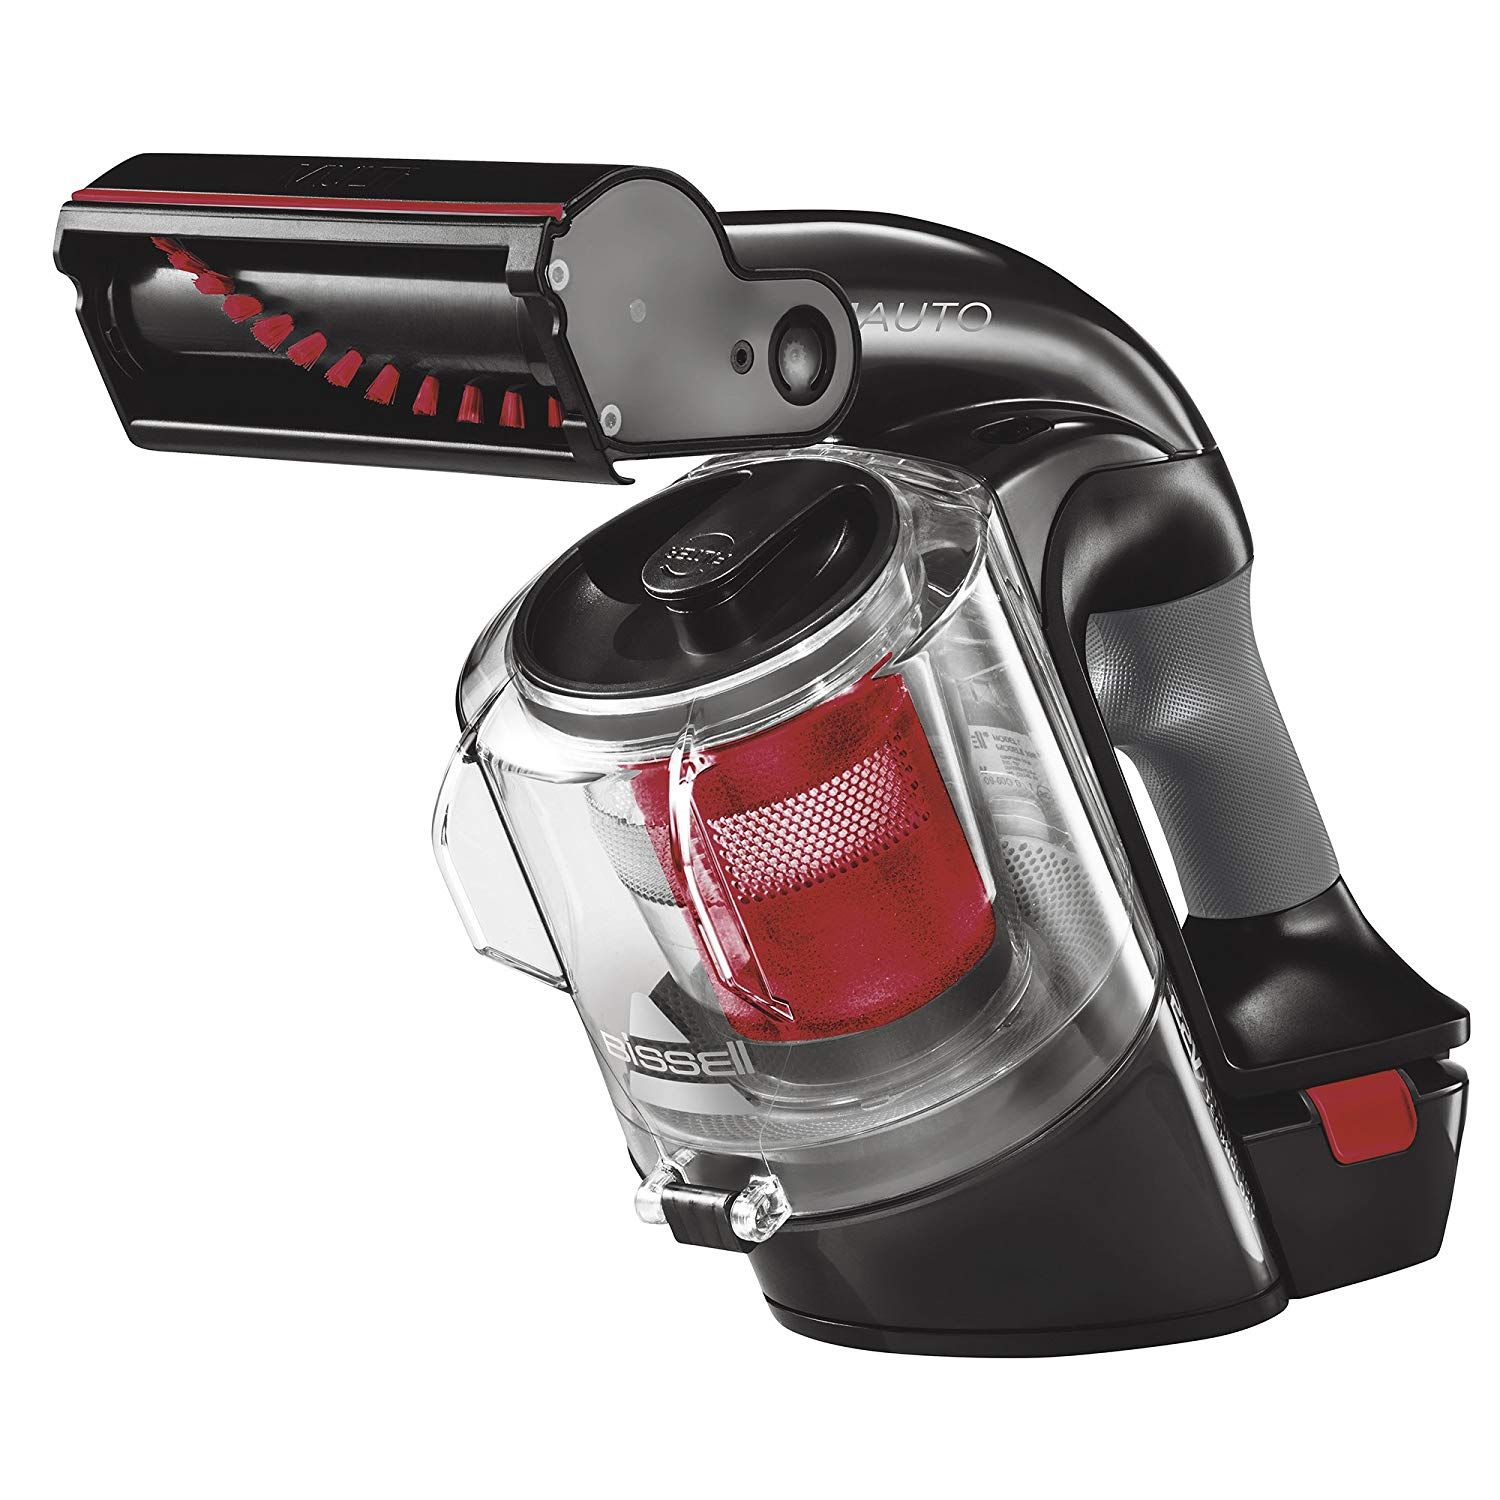 BISSELL Multi Auto Lightweight Lithium Ion Cordless Car